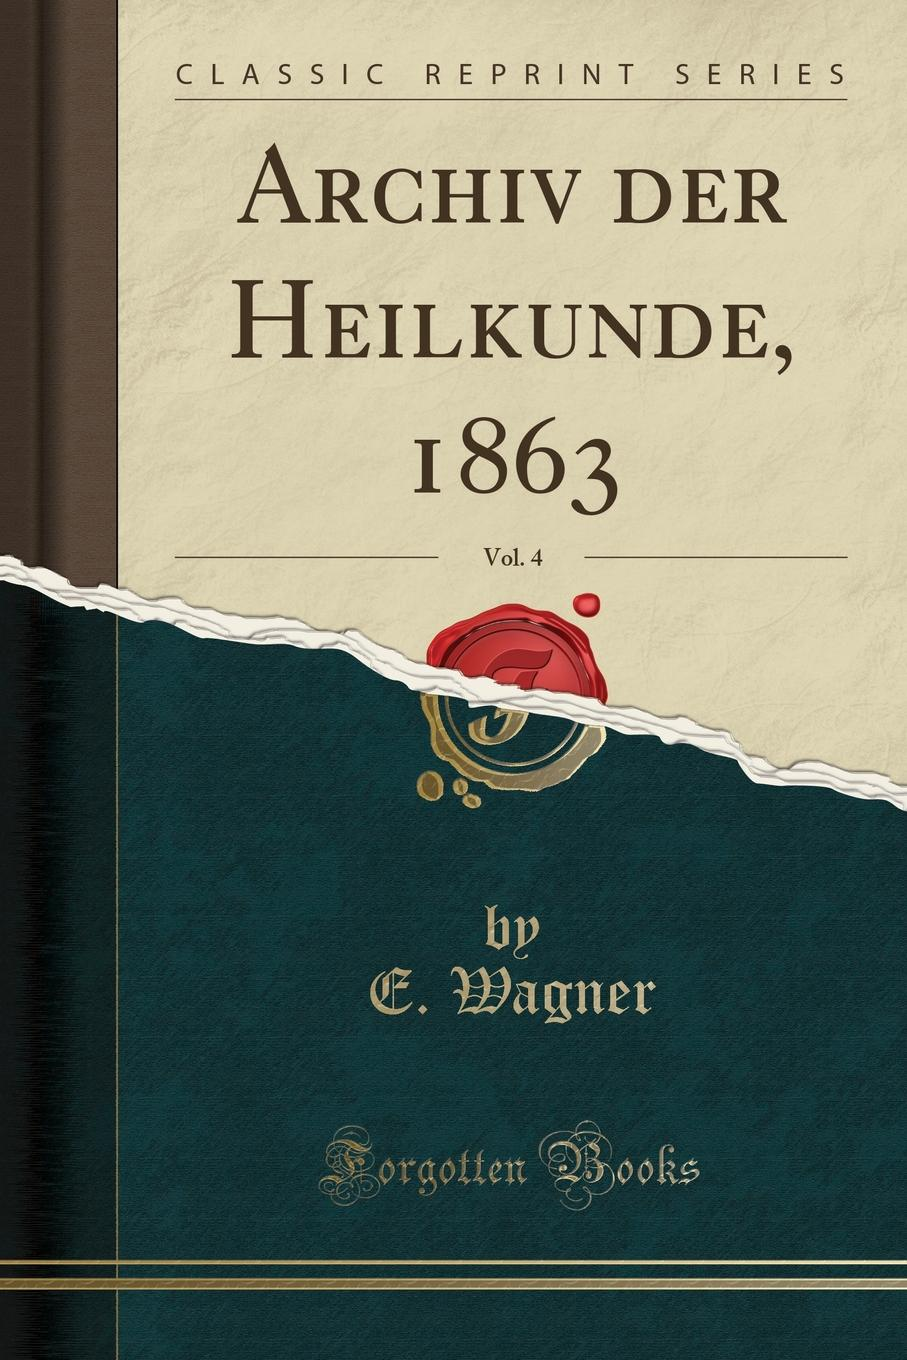 E. Wagner Archiv der Heilkunde, 1863, Vol. 4 (Classic Reprint)